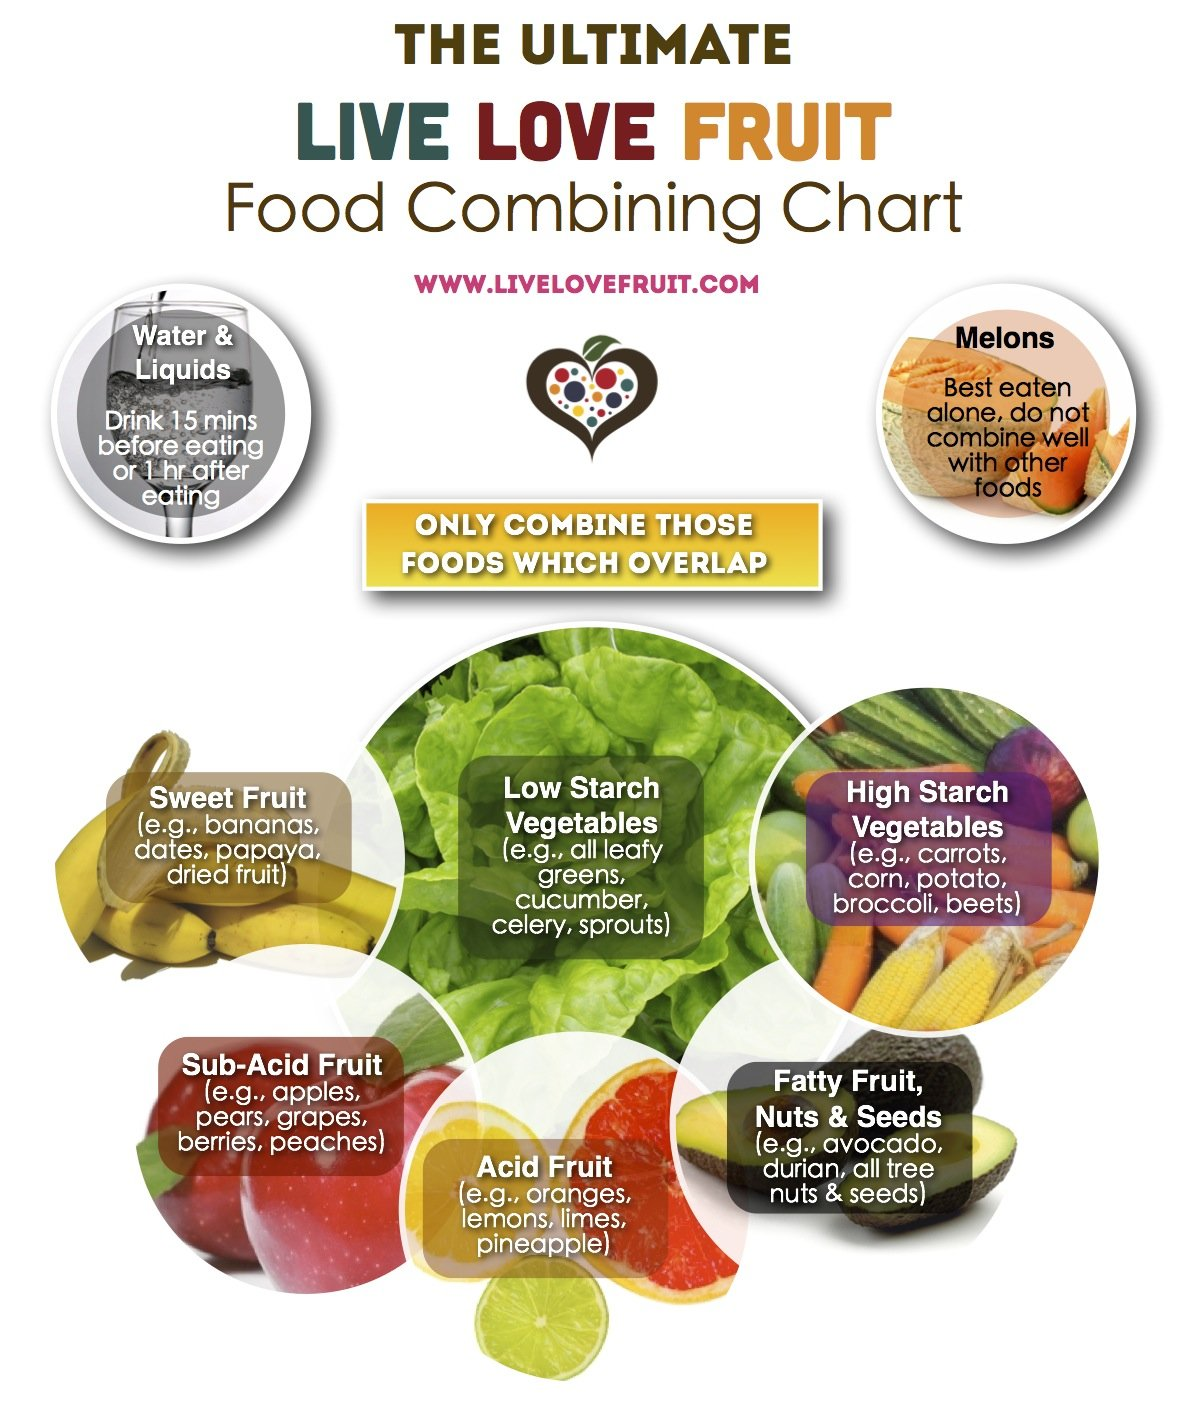 Try This Https Livelovefruit Wp Content Uploads 2017 07 Food Combining 1 Jpg